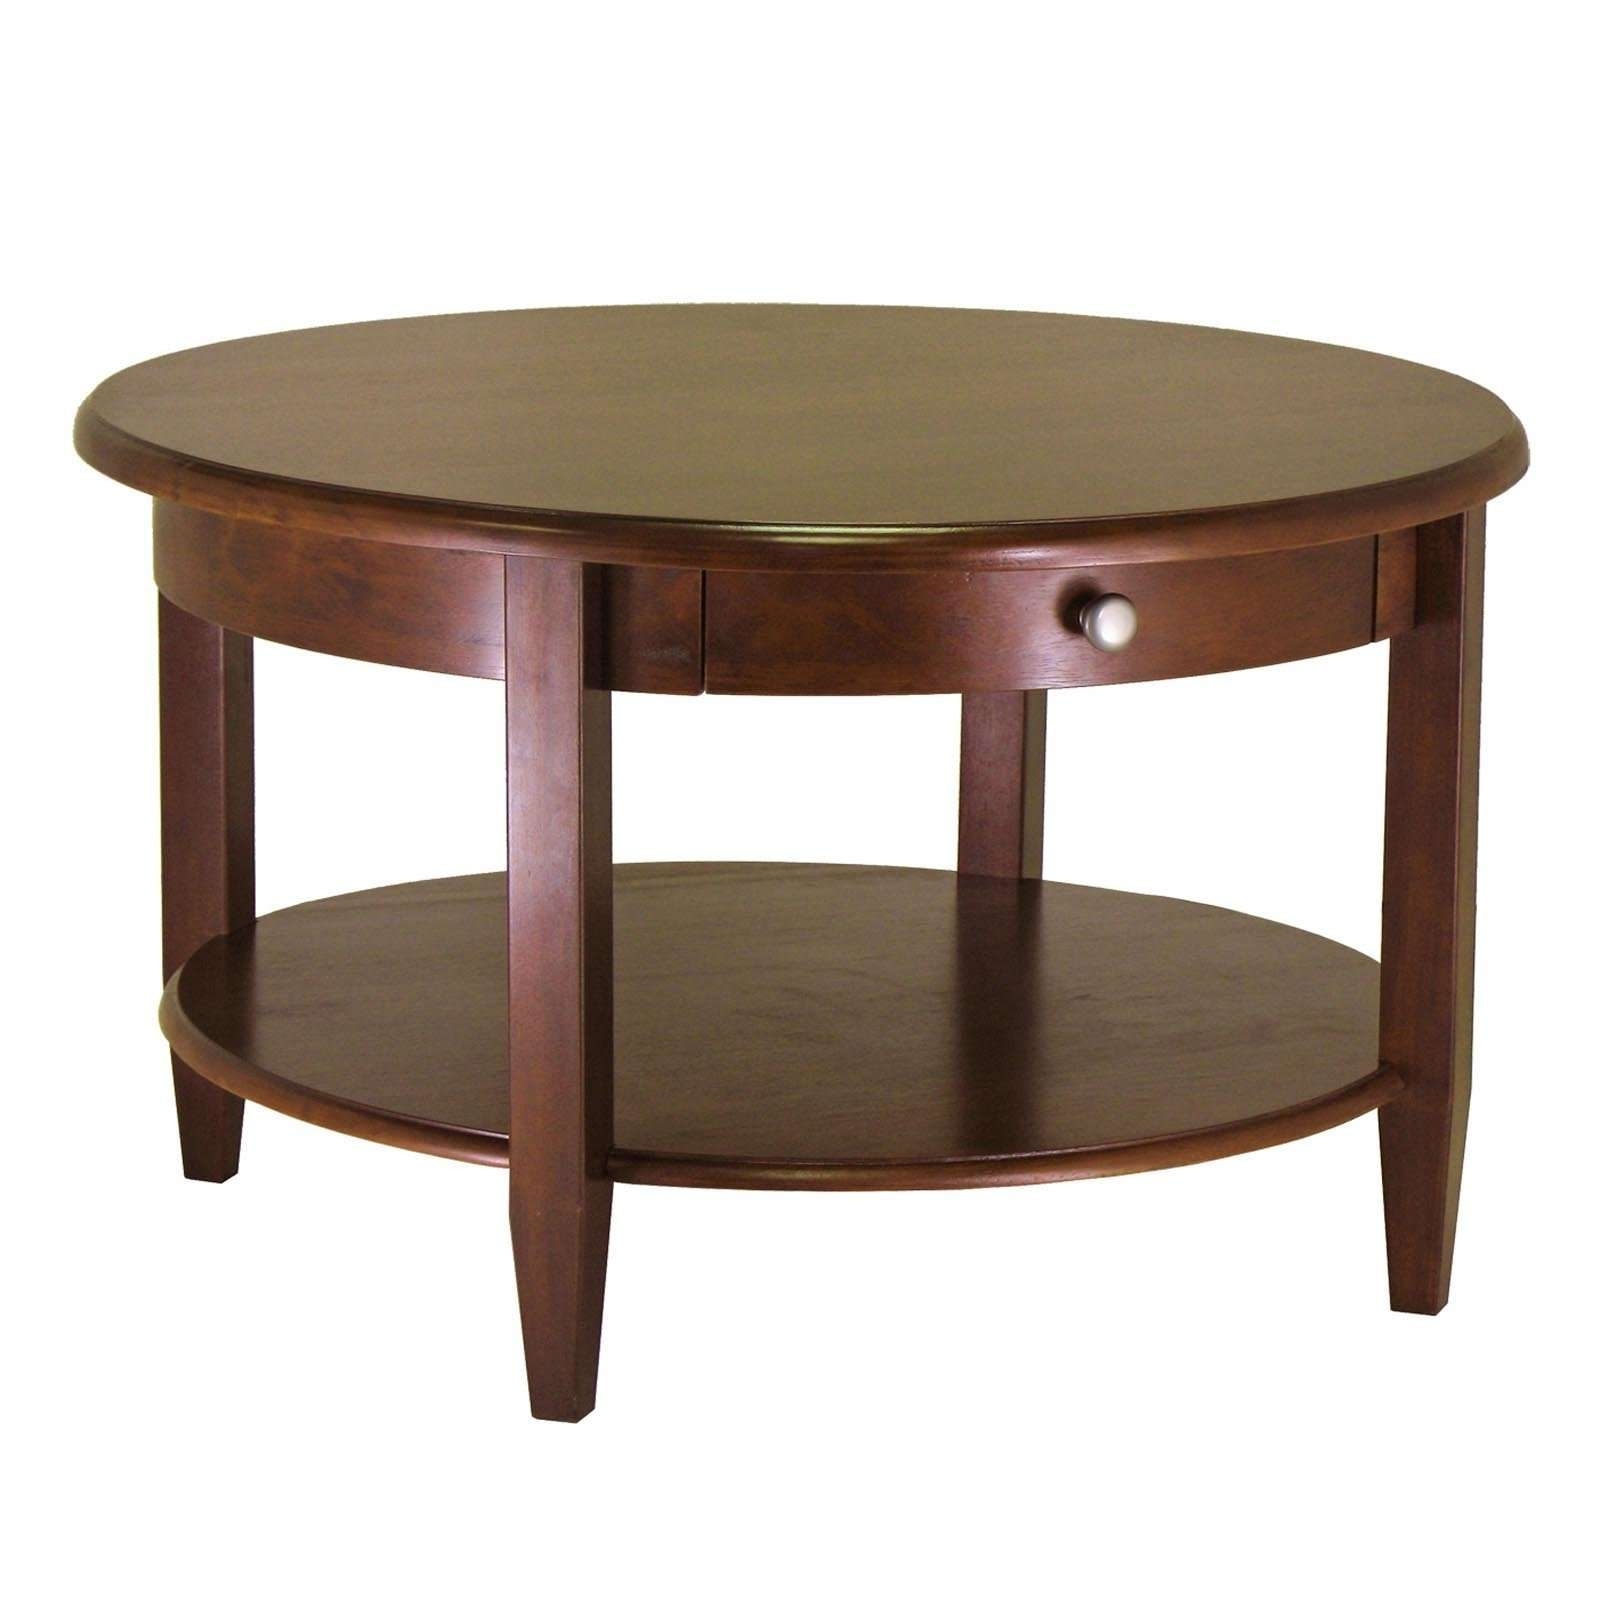 Coffee Tables : Small Round Coffee Table Tables Design Wood With Regard To Most Popular Small Circular Coffee Table (View 9 of 20)